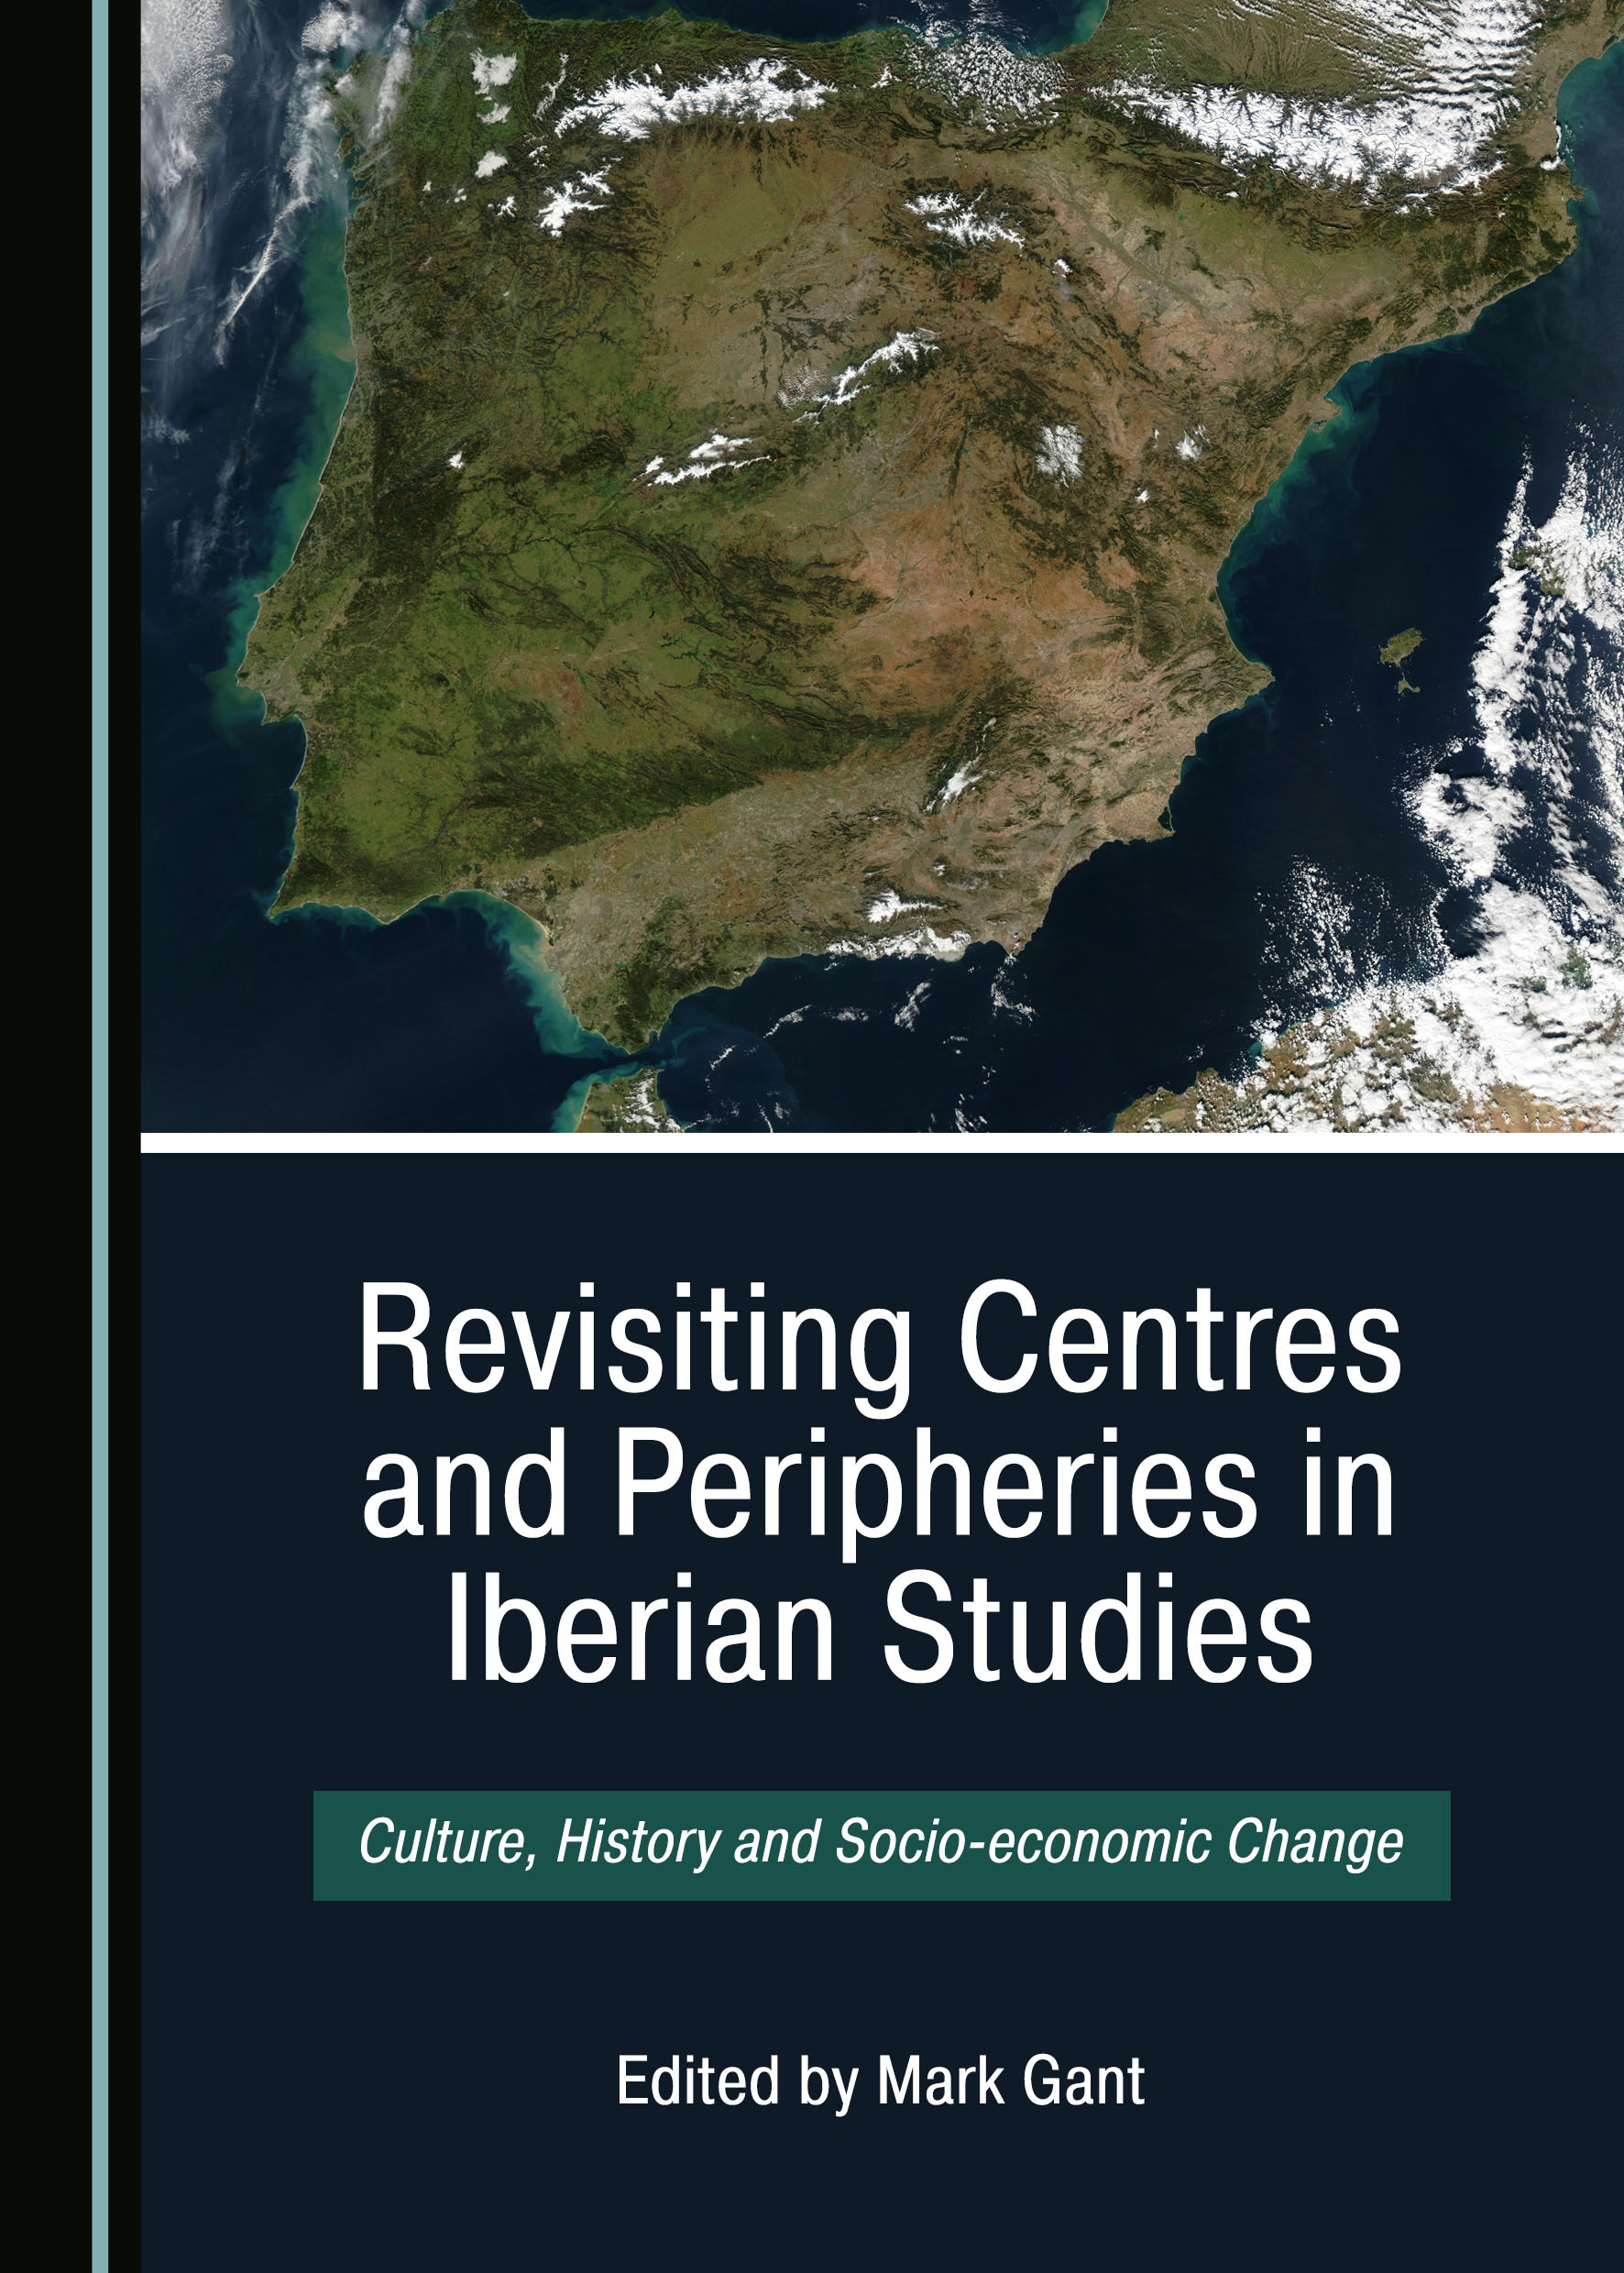 Revisiting Centres and Peripheries in Iberian Studies: Culture, History and Socio-economic Change